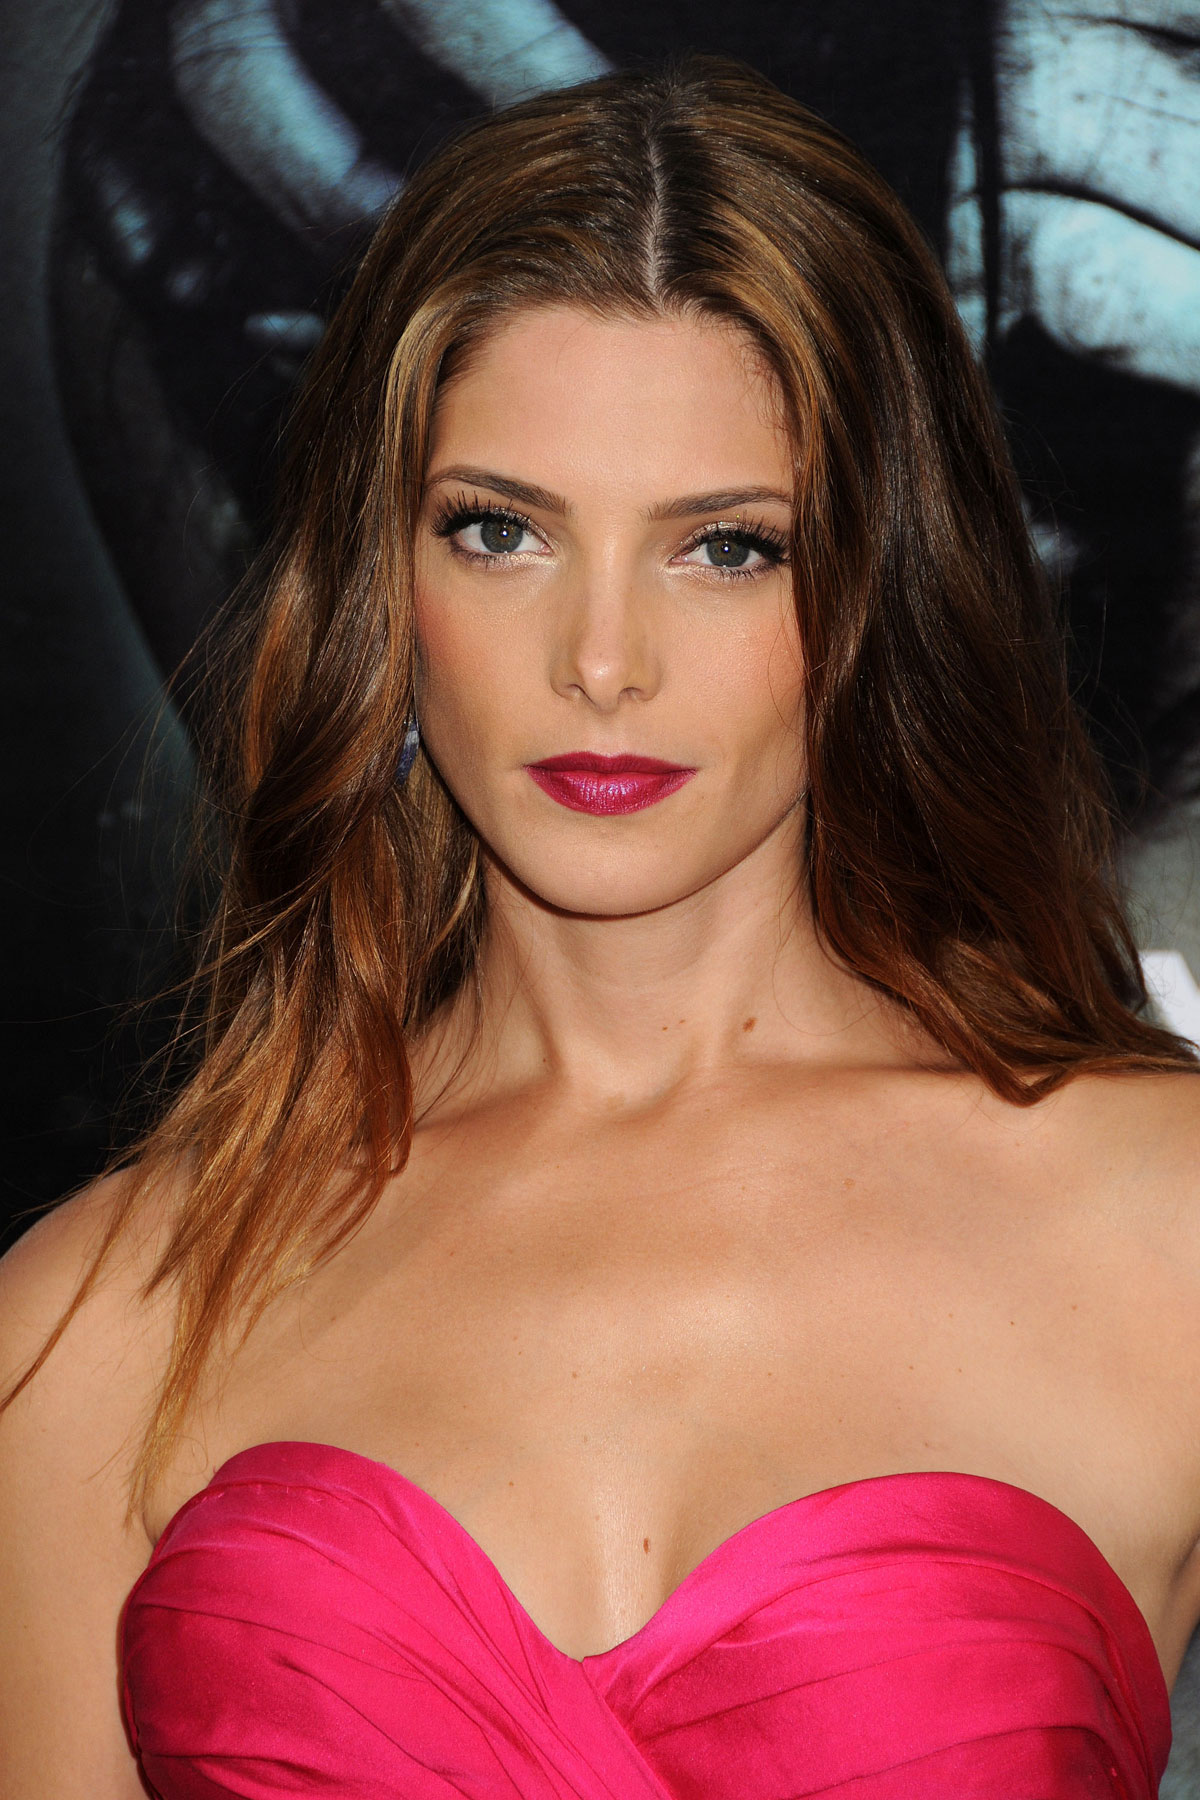 With Ashley greene apparition excited